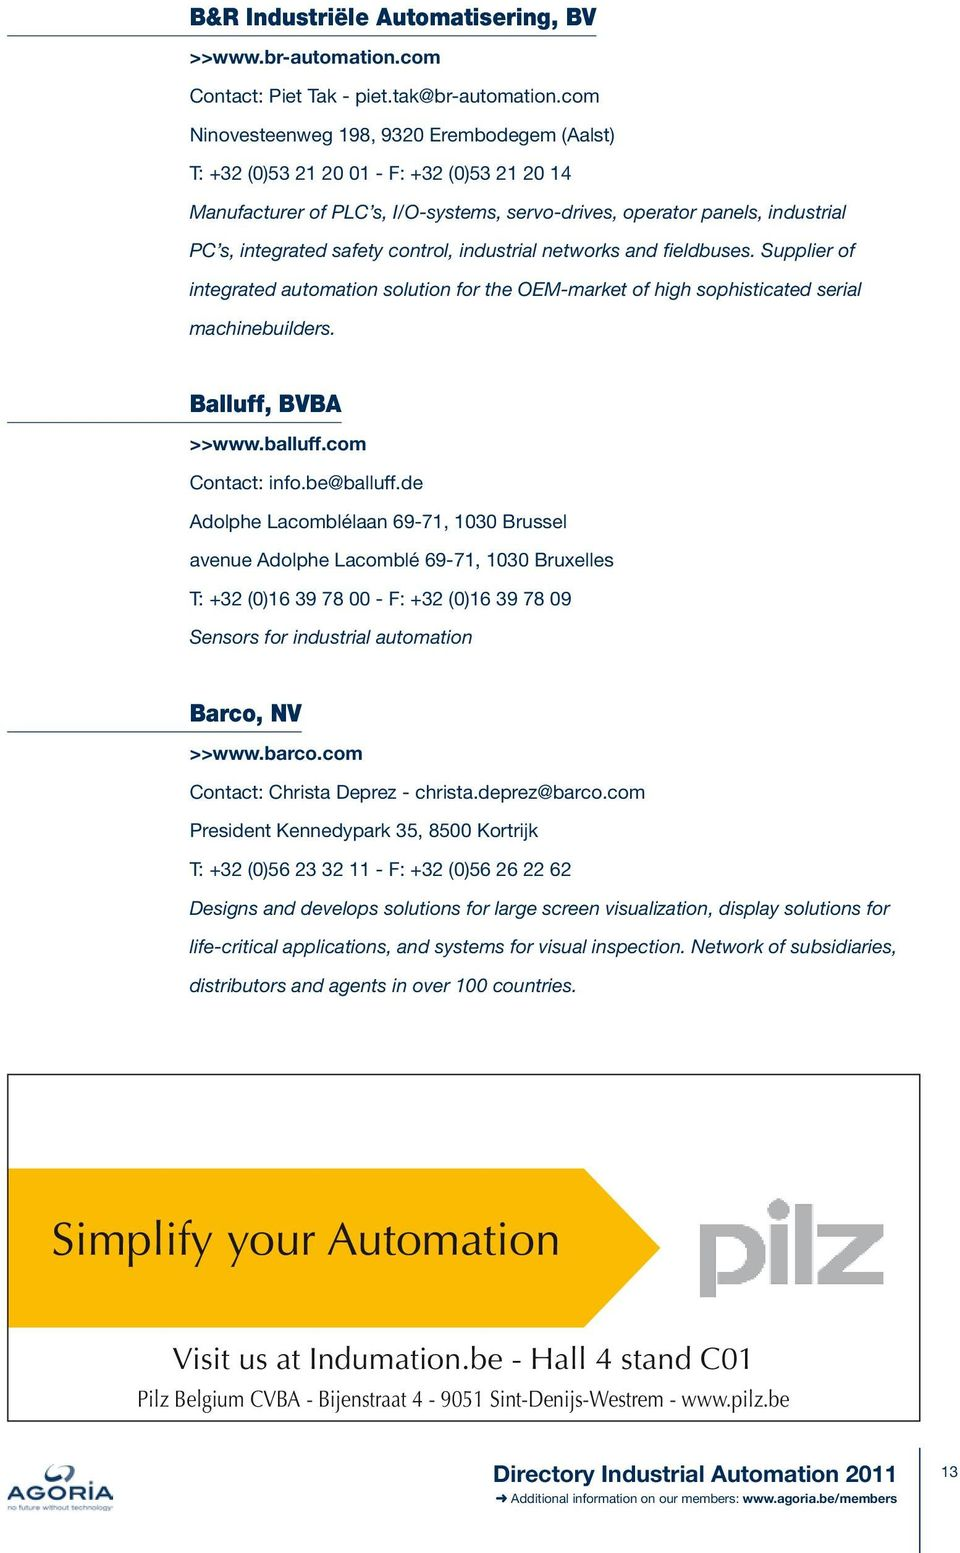 control, industrial networks and fieldbuses. Supplier of integrated automation solution for the OEM-market of high sophisticated serial machinebuilders. Balluff, BVBA >>www.balluff.com Contact: info.